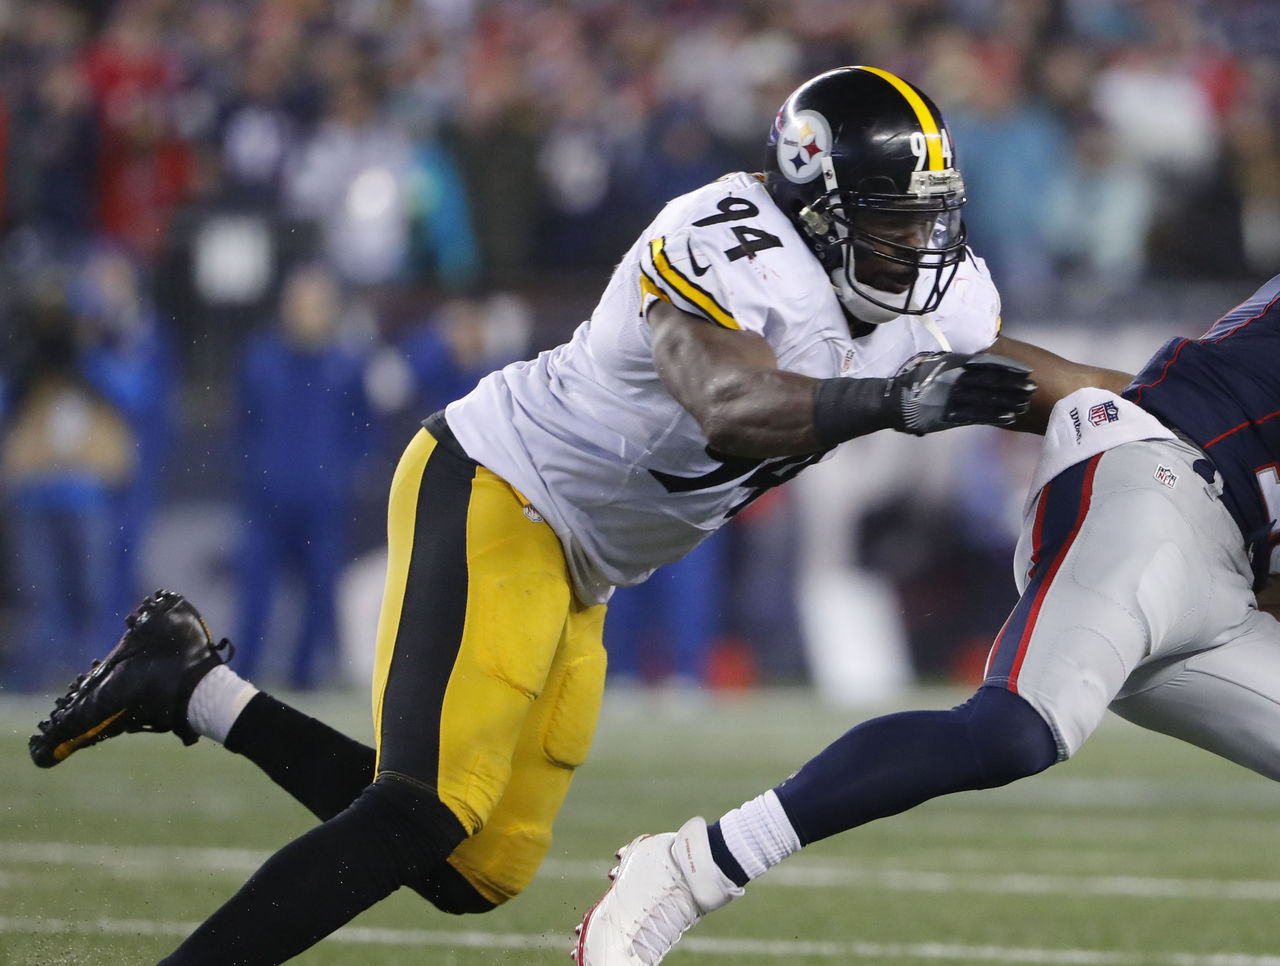 Cropped 2017 01 23t015719z 940279794 nocid rtrmadp 3 nfl afc championship pittsburgh steelers at new england patriots